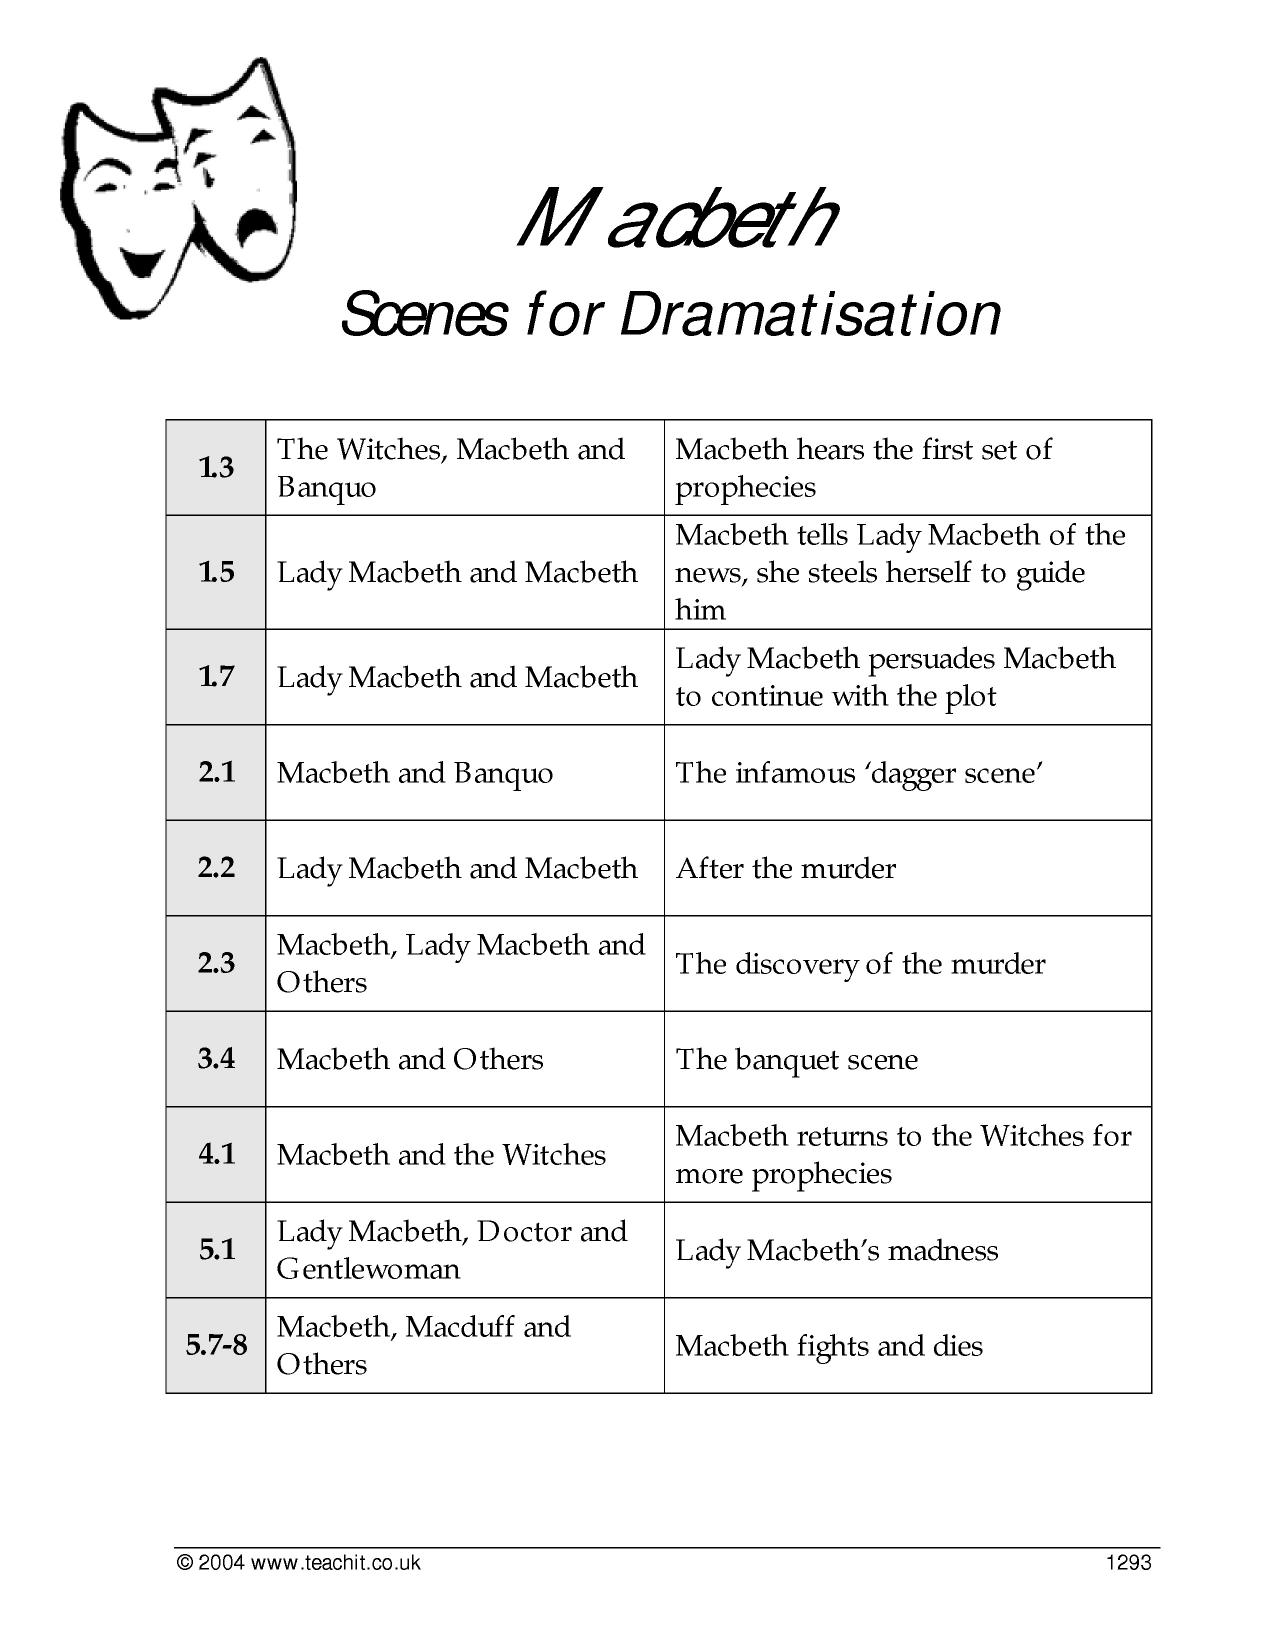 essay lady macbeth lady macbeth vs jocasta lady macbeth king  macbeth ks resources all 1 preview